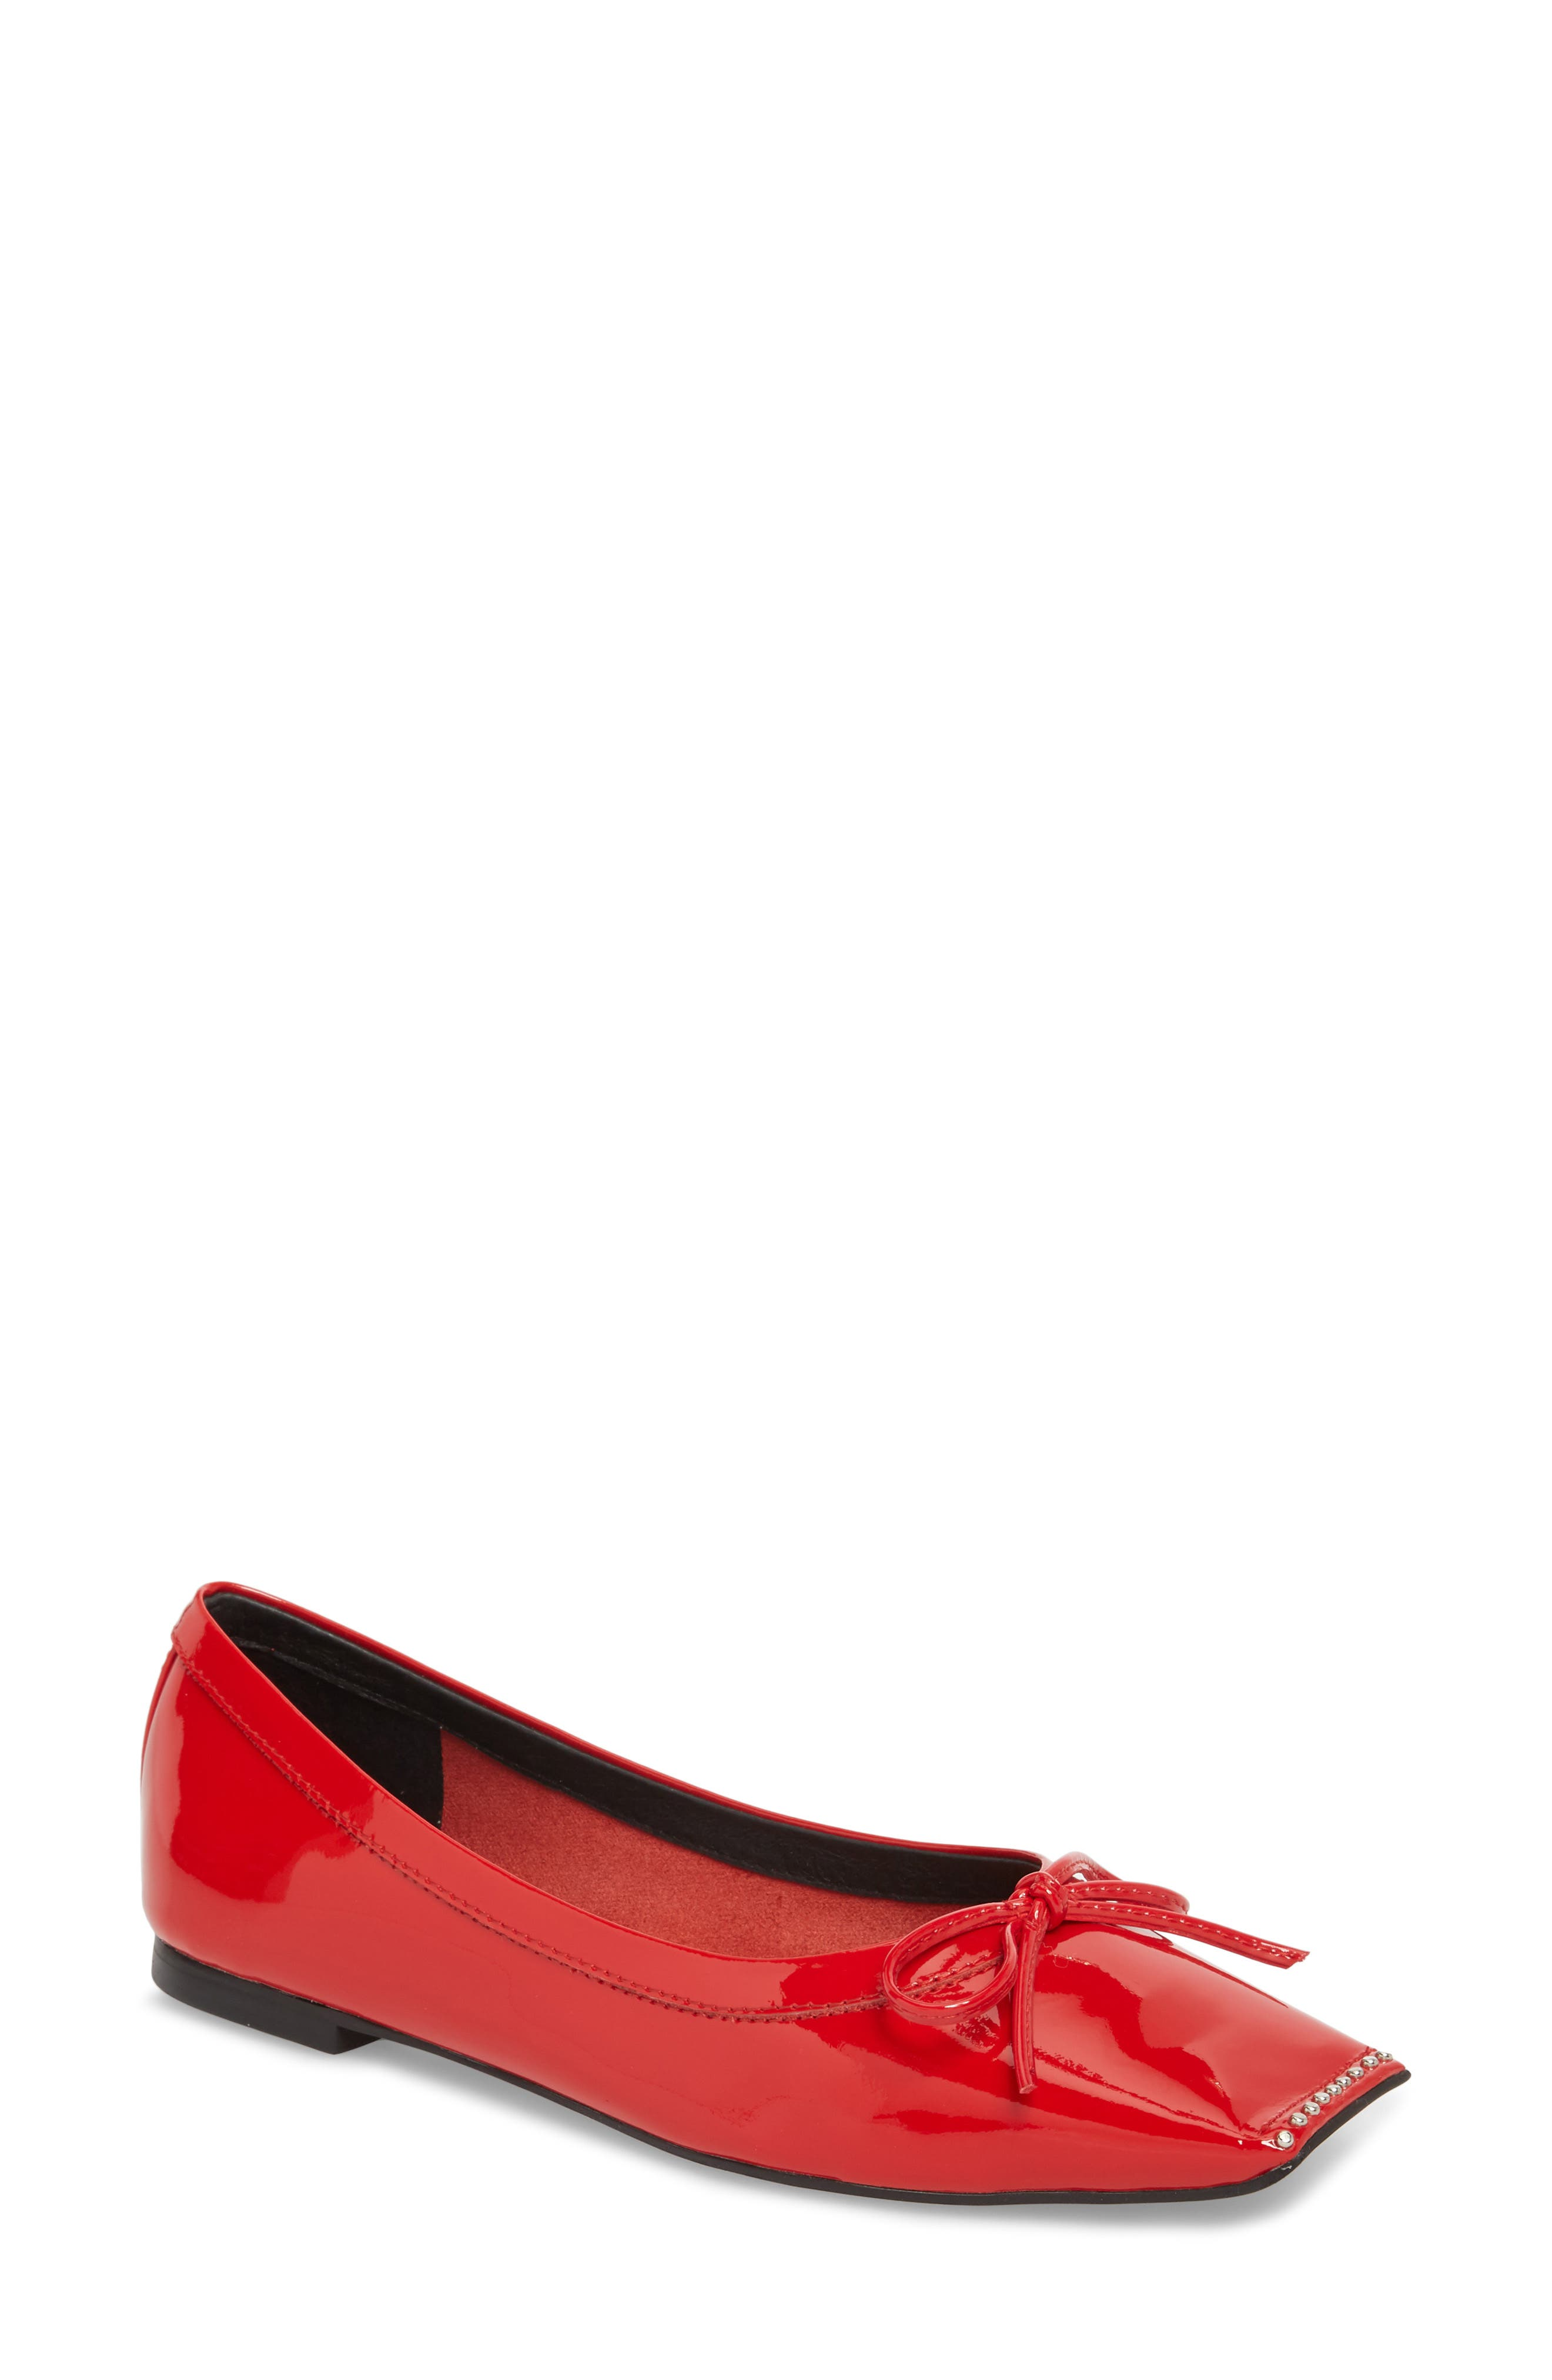 Achira Flat,                         Main,                         color, Red Patent Leather